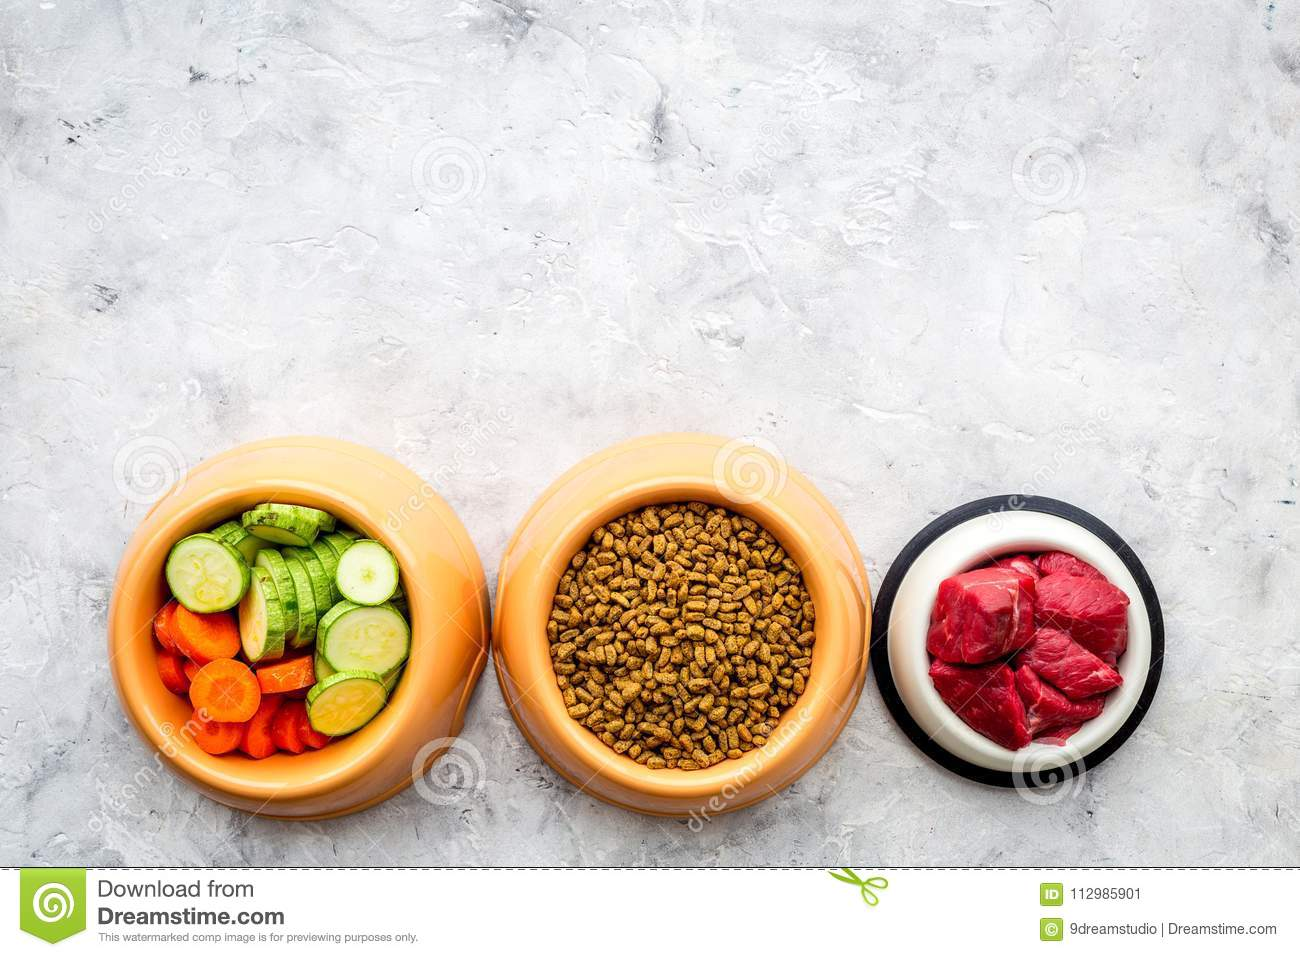 Dry pet food with natural ingredients. Raw meat, cut vegetables zucchini and carrot on stone backgroud top view copy